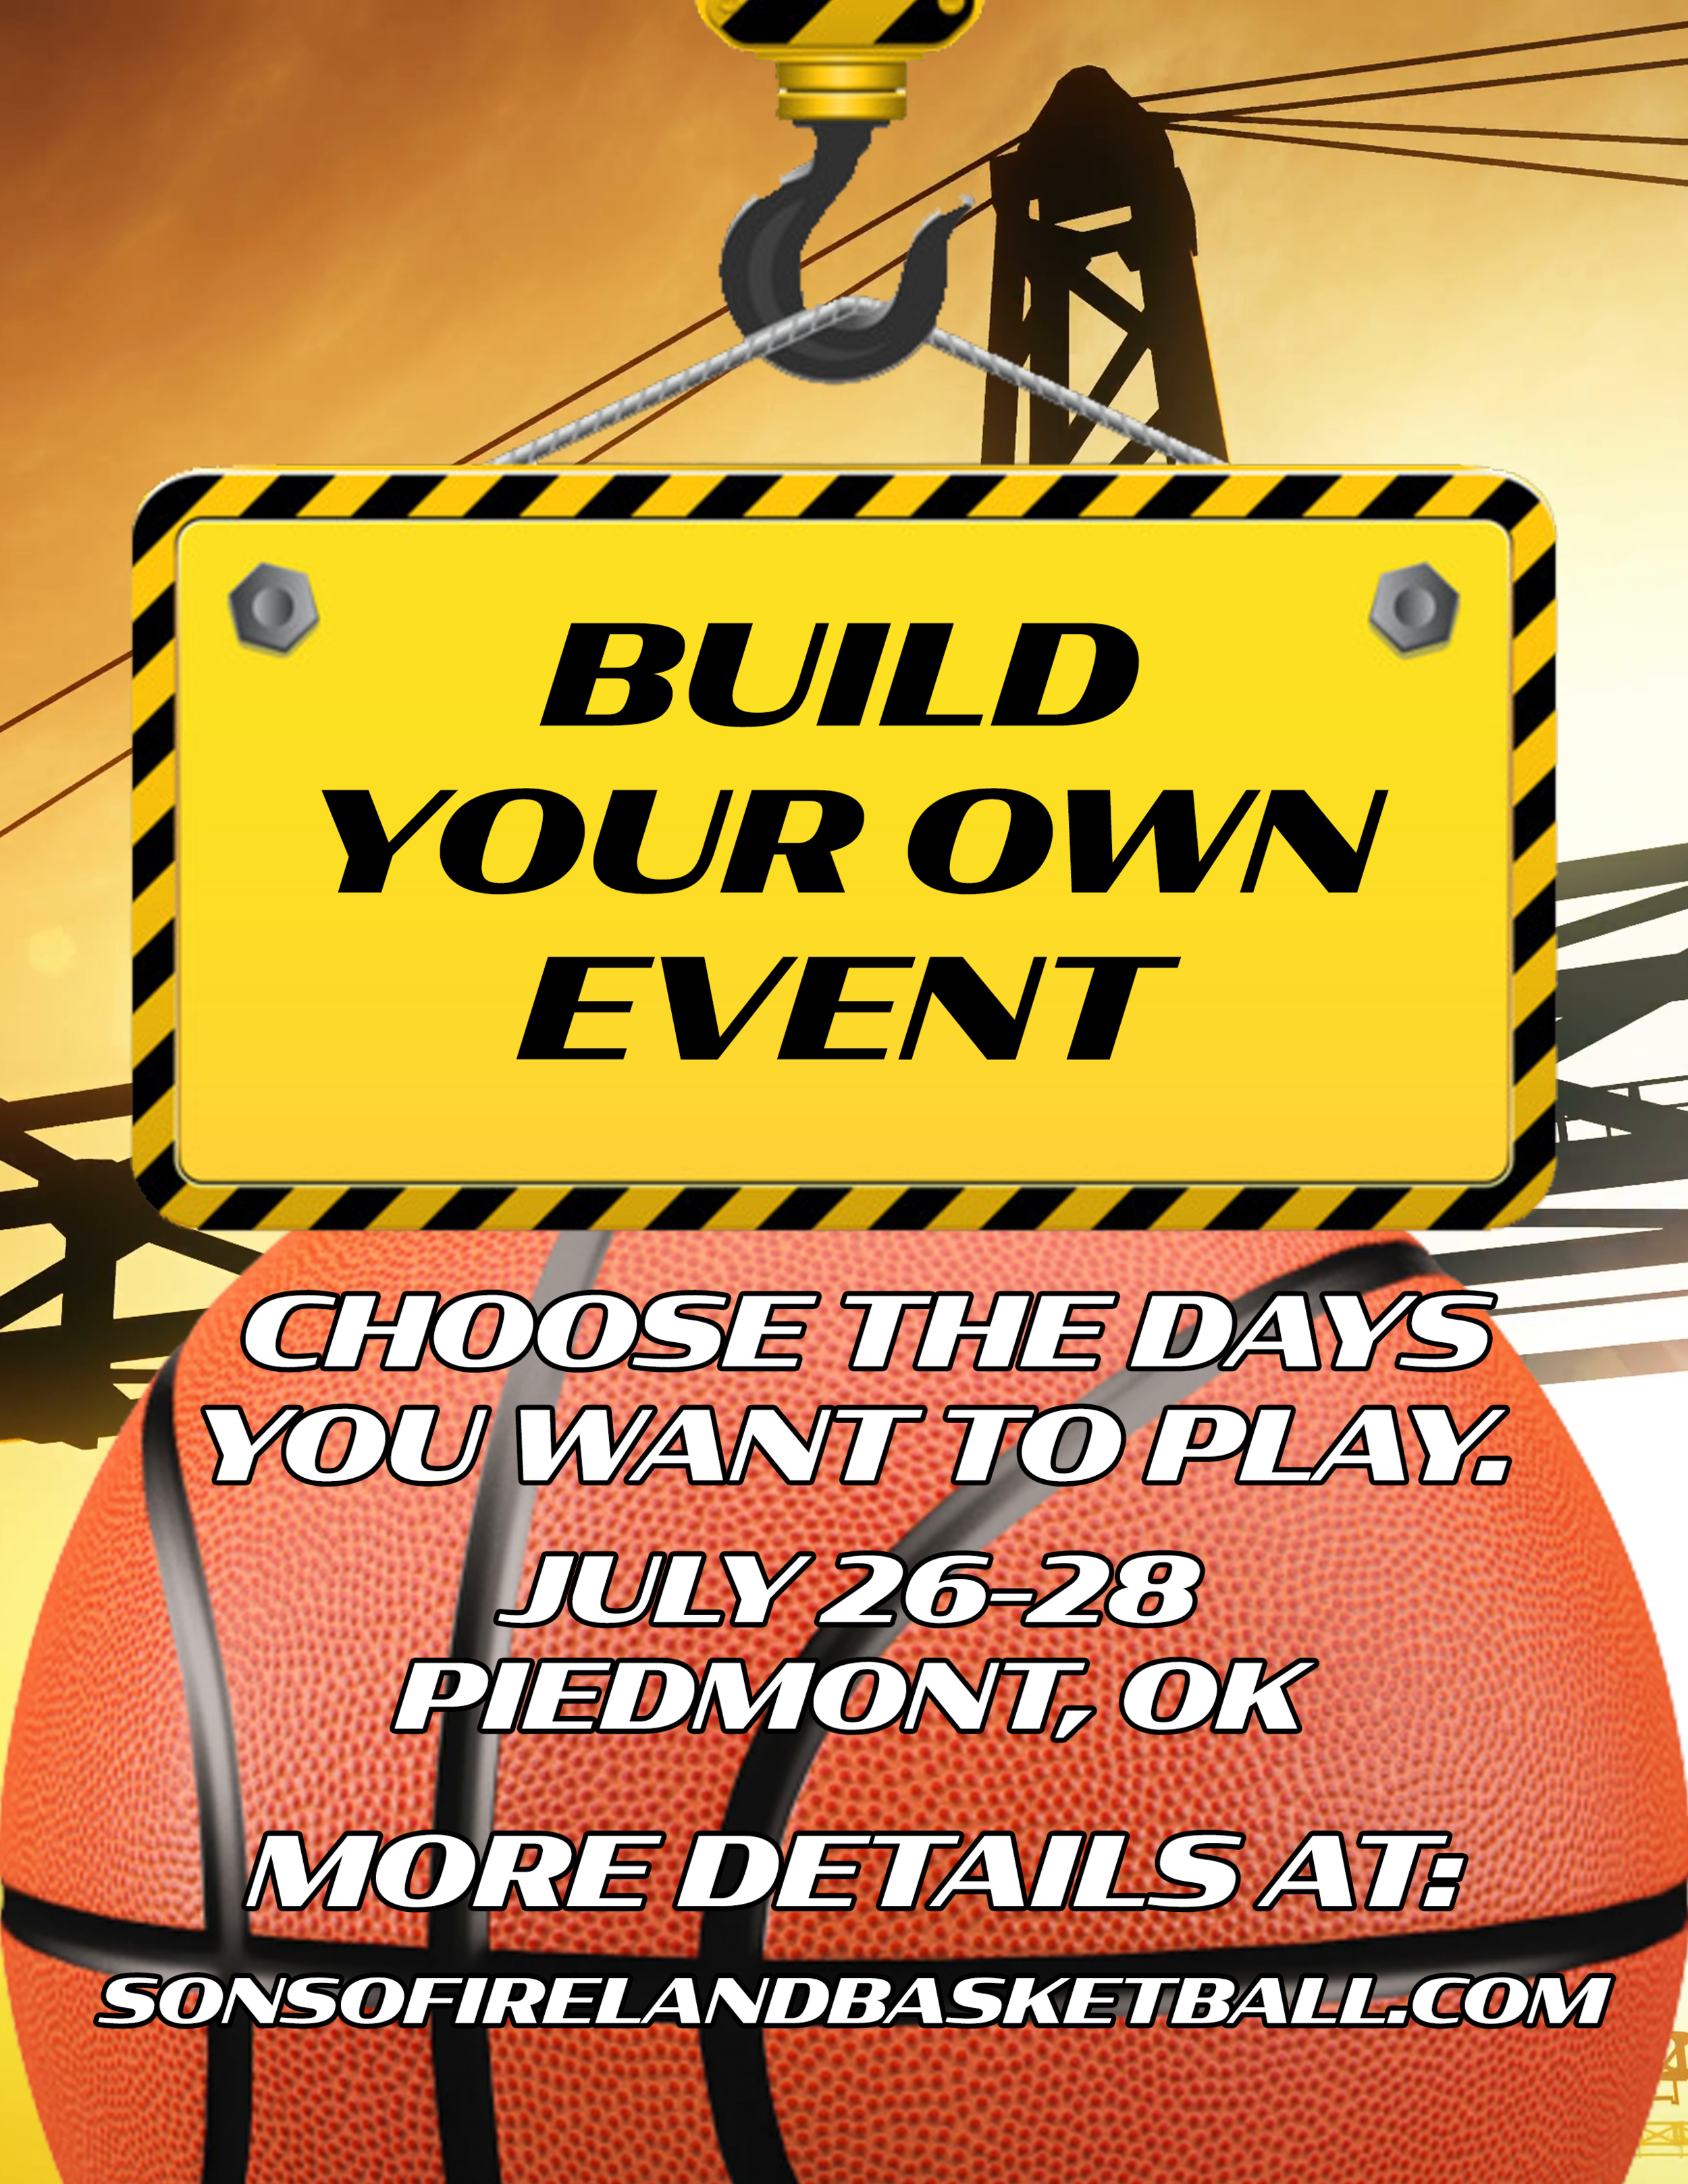 Build your own event